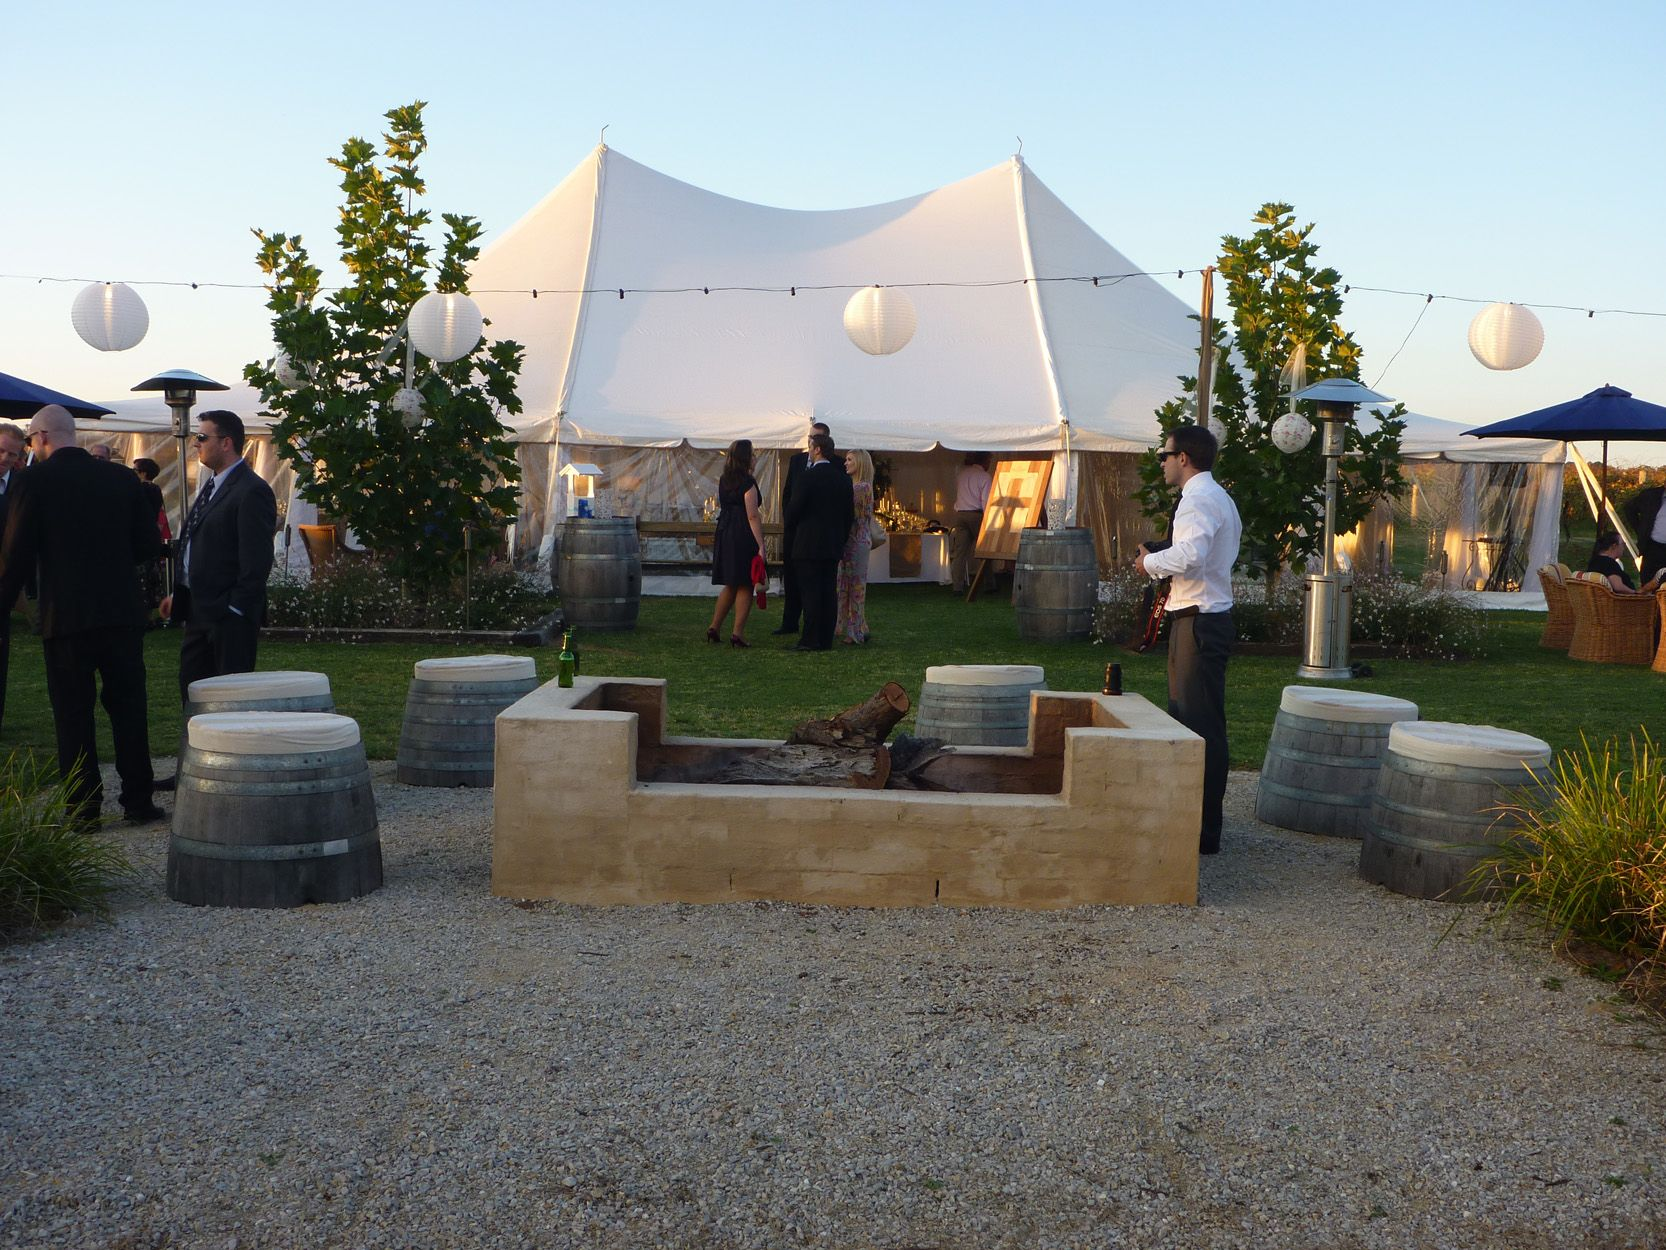 The Vinegrove Mudgee NSW Our Amazing Wedding VenueIts Relaxed